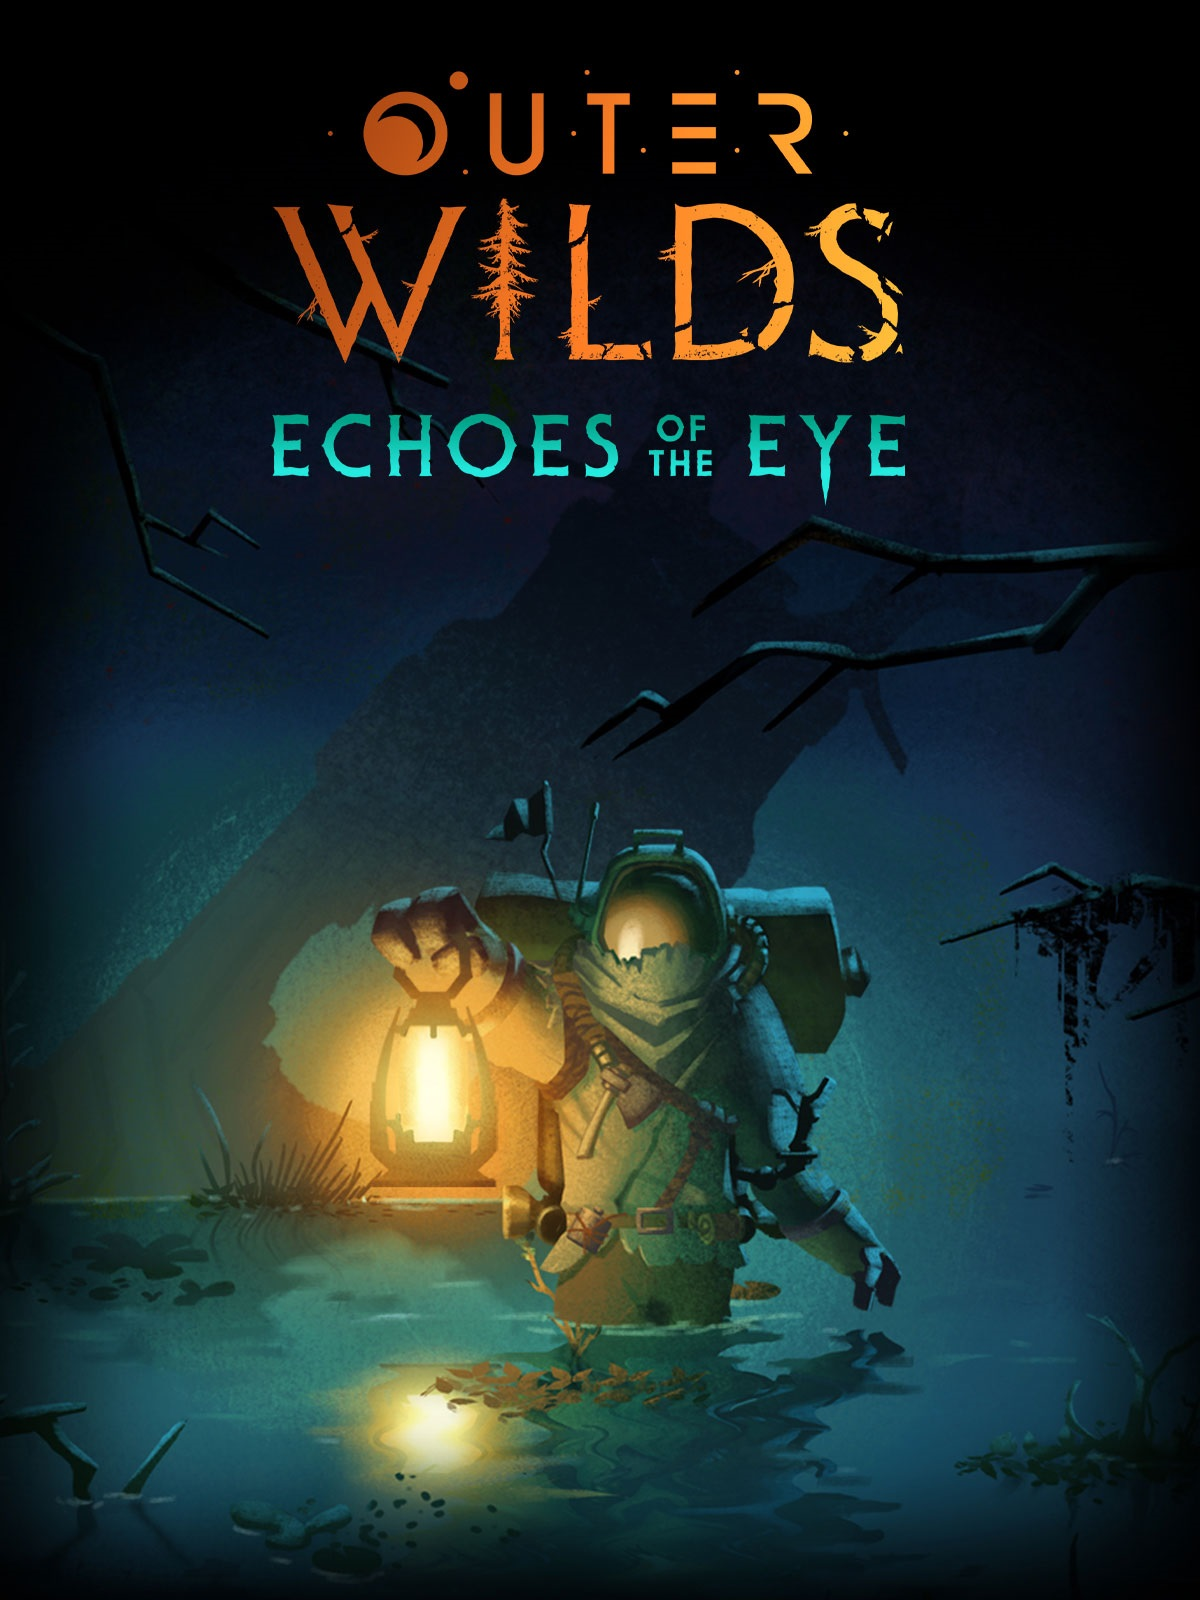 Baixar Outer Wilds - Echoes of the Eye Torrent (PC)